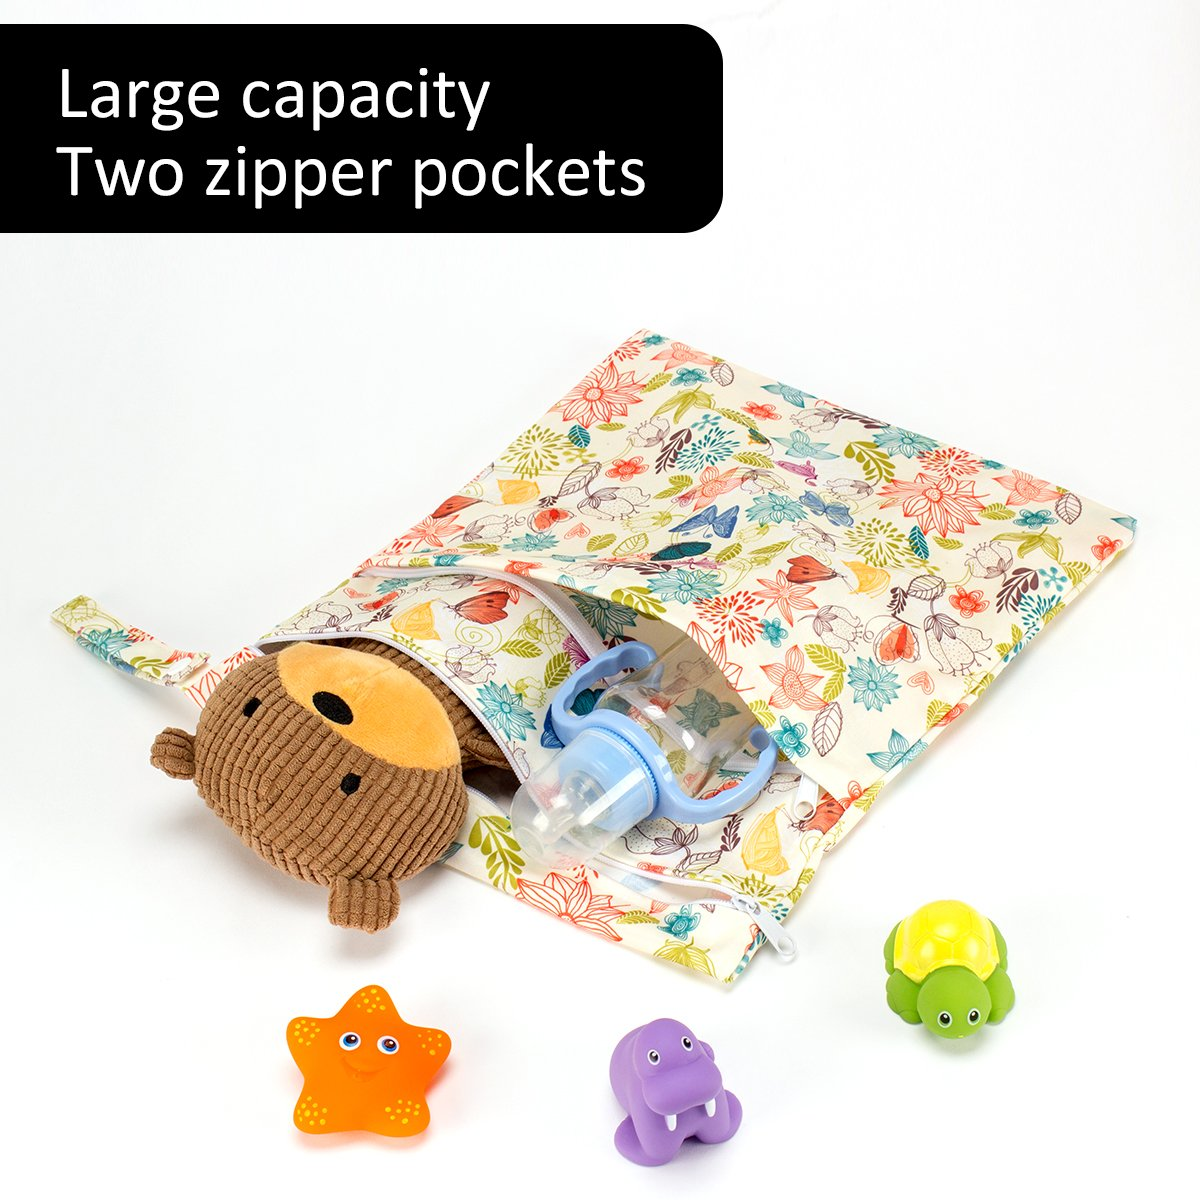 Biubee 3 Pack Wet Dry Cloth Diaper Bags - Baby Waterproof Washable Reusable Hanging Diaper Organizer (Pack of 3 New) by Biubee (Image #4)